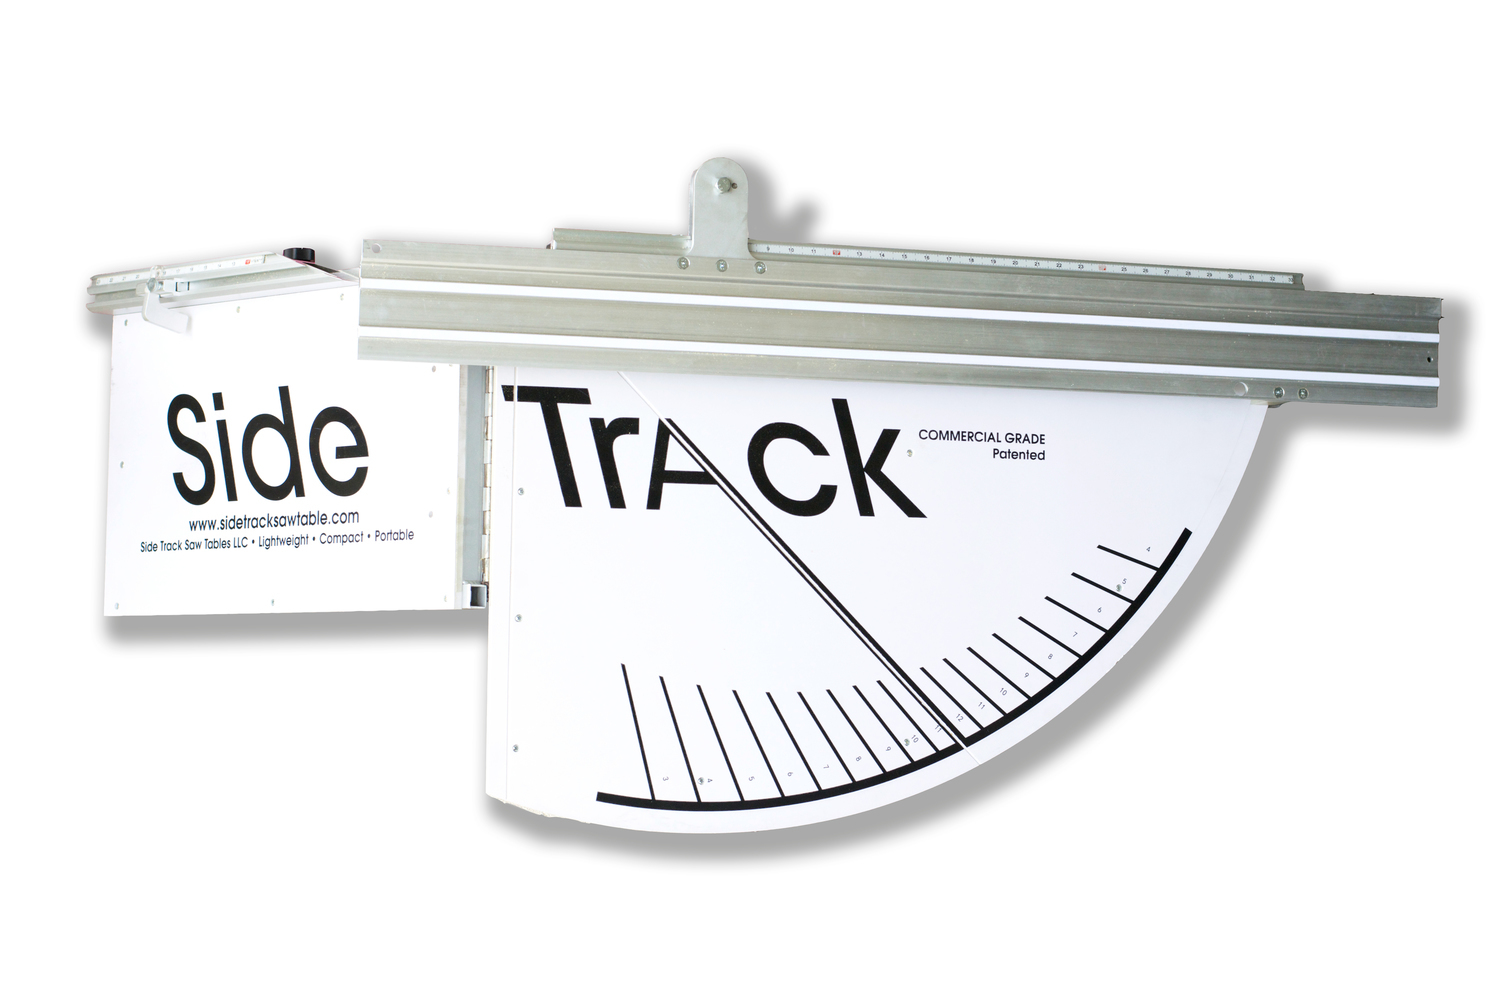 Side Track Saw Table Pre-Order (9/30) ship date)